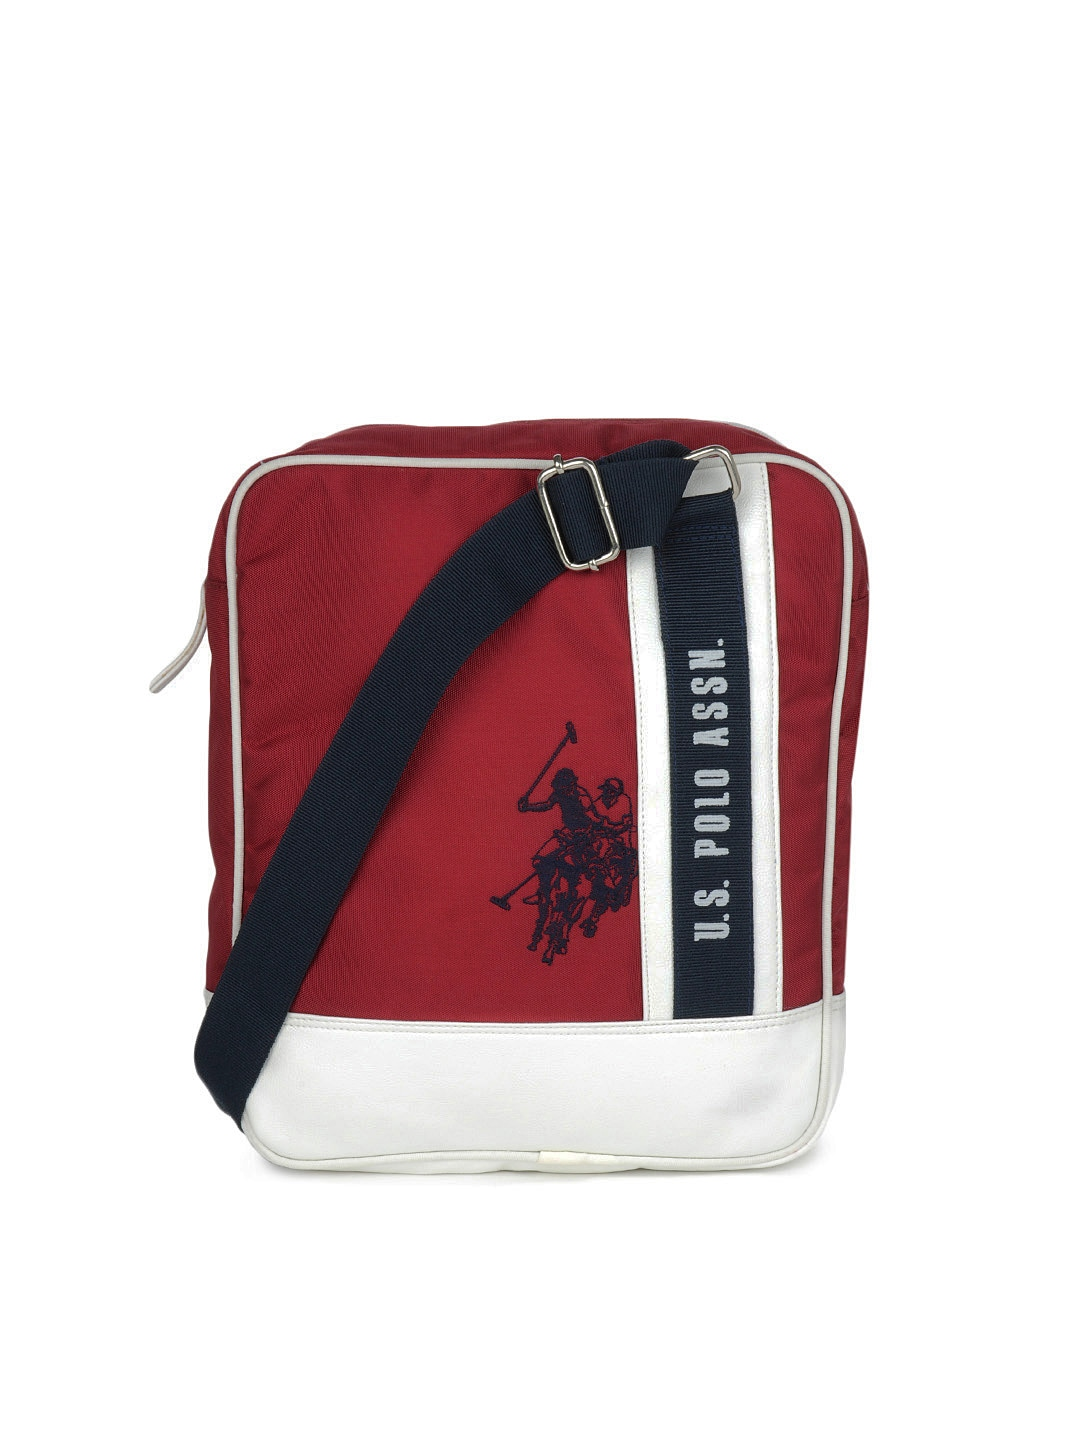 Us polo assn usmb0001 U S Polo Assn Men Red Sling Bag- Price in India f9f08b2250